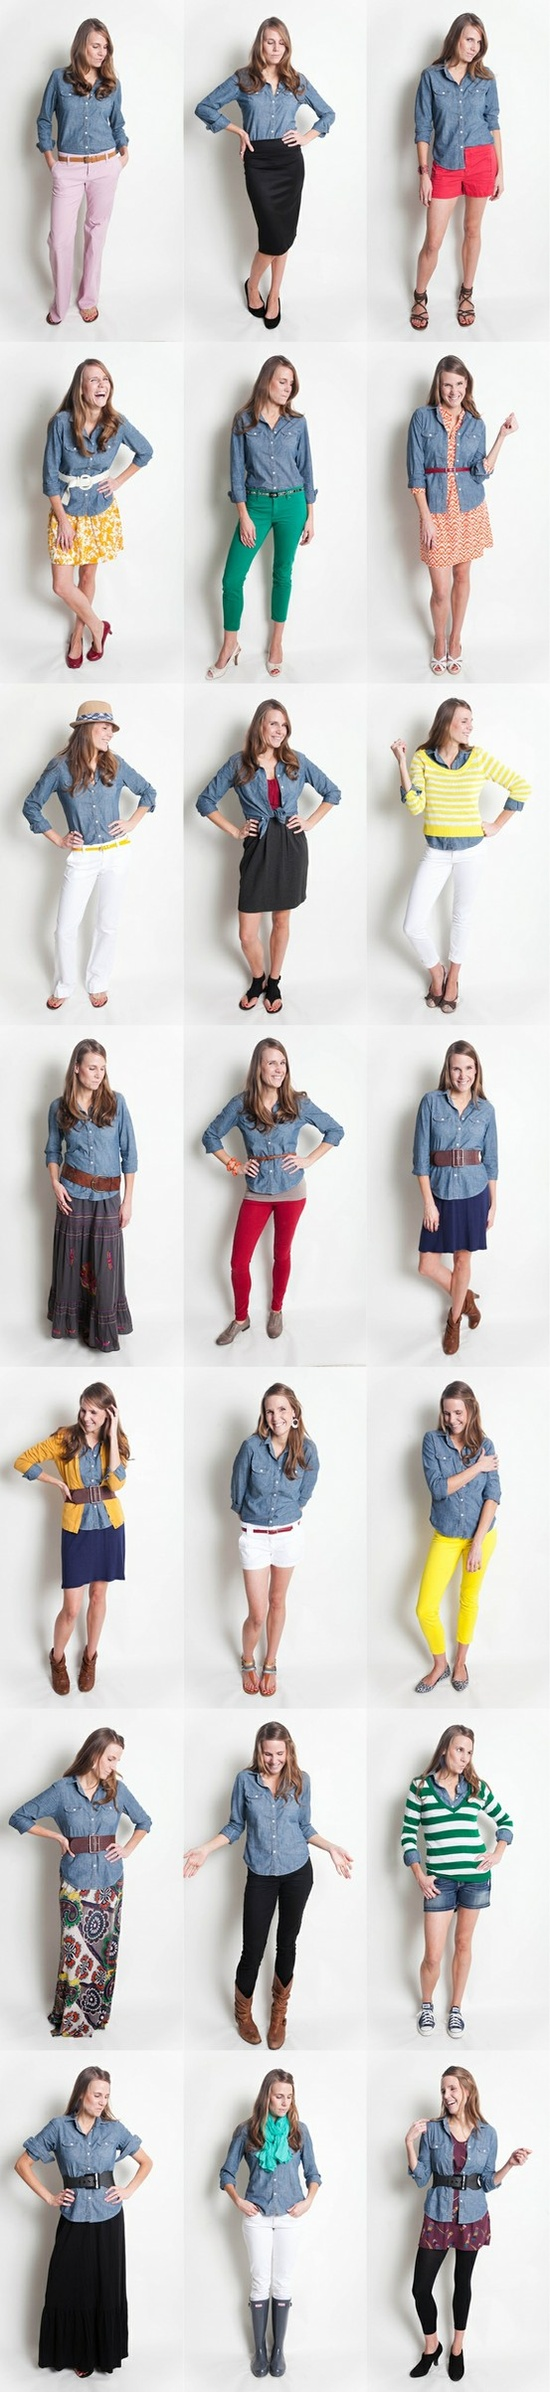 THIS IS WHY I LOVE DENIM SHIRTS! 21 ways to wear your denim/jean/chambray shcirt:) this comes in handy, because I have to wear a shirt like this to work, so now I have plenty of ideas if how to wear it outside of work too:)